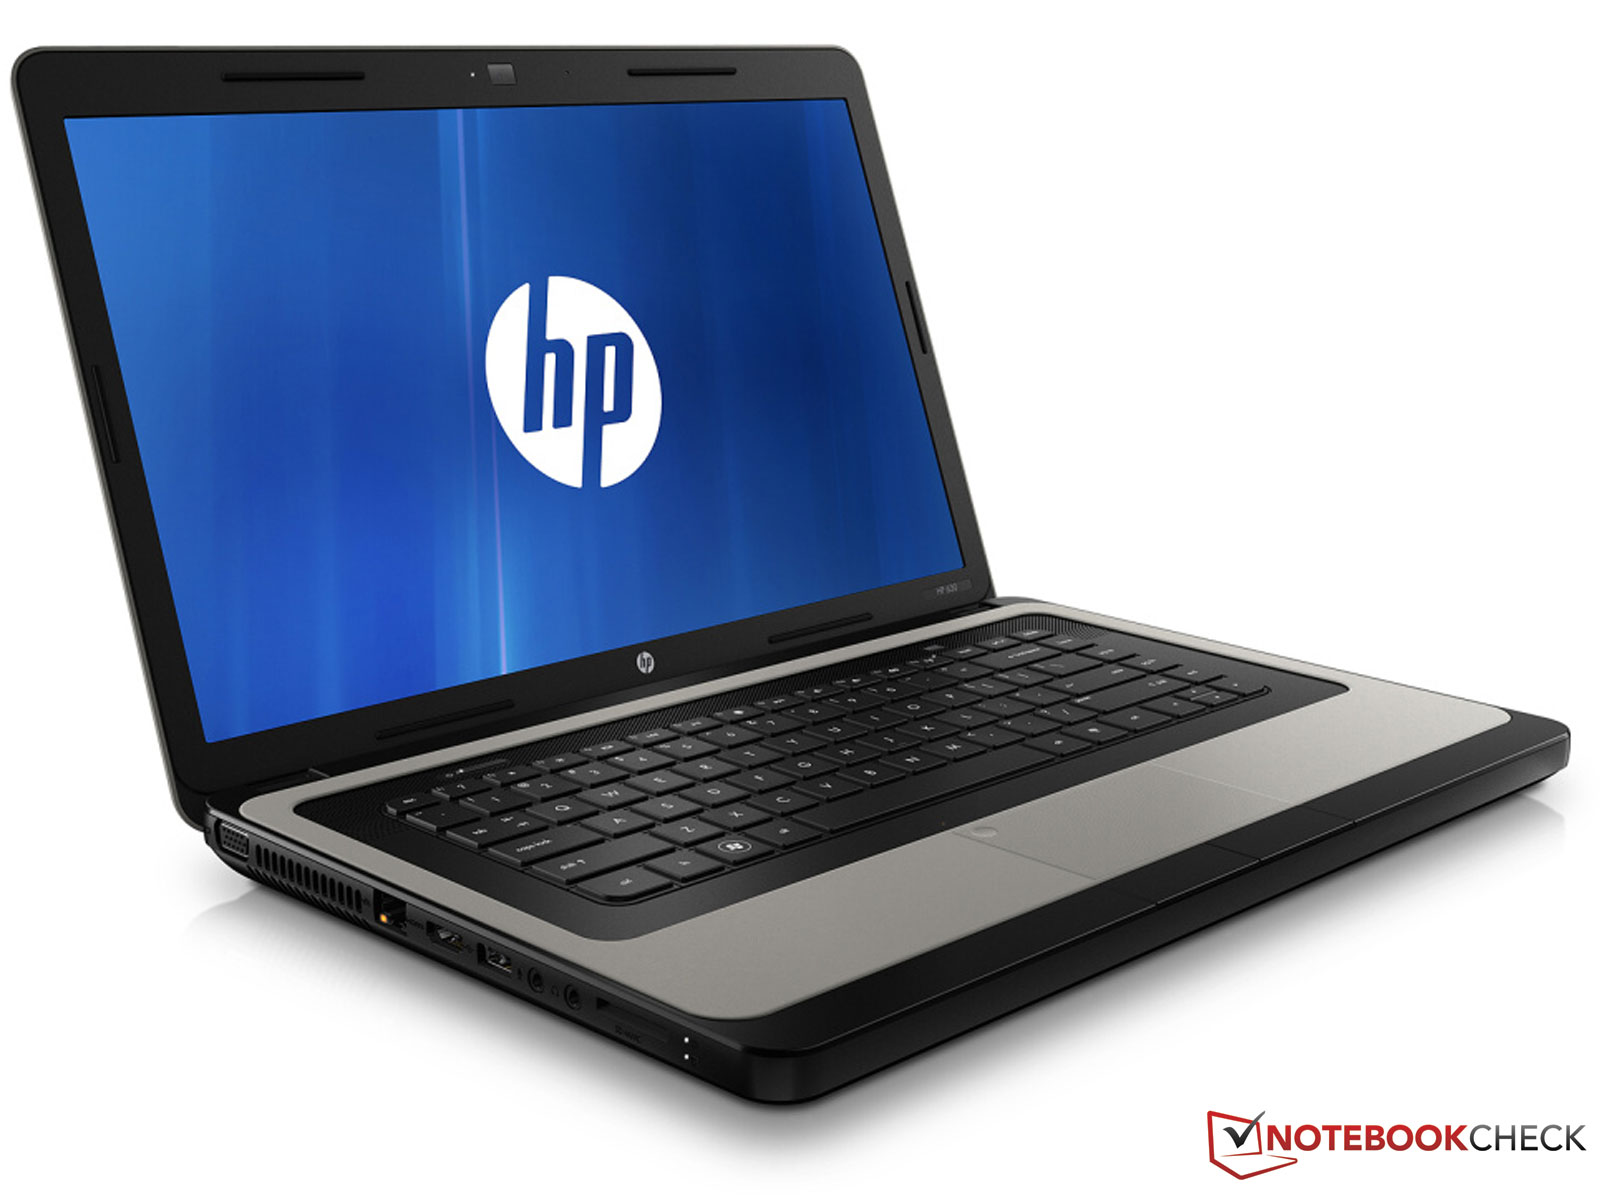 Review HP 635 LH416EAABD Notebook  NotebookCheck.net Reviews